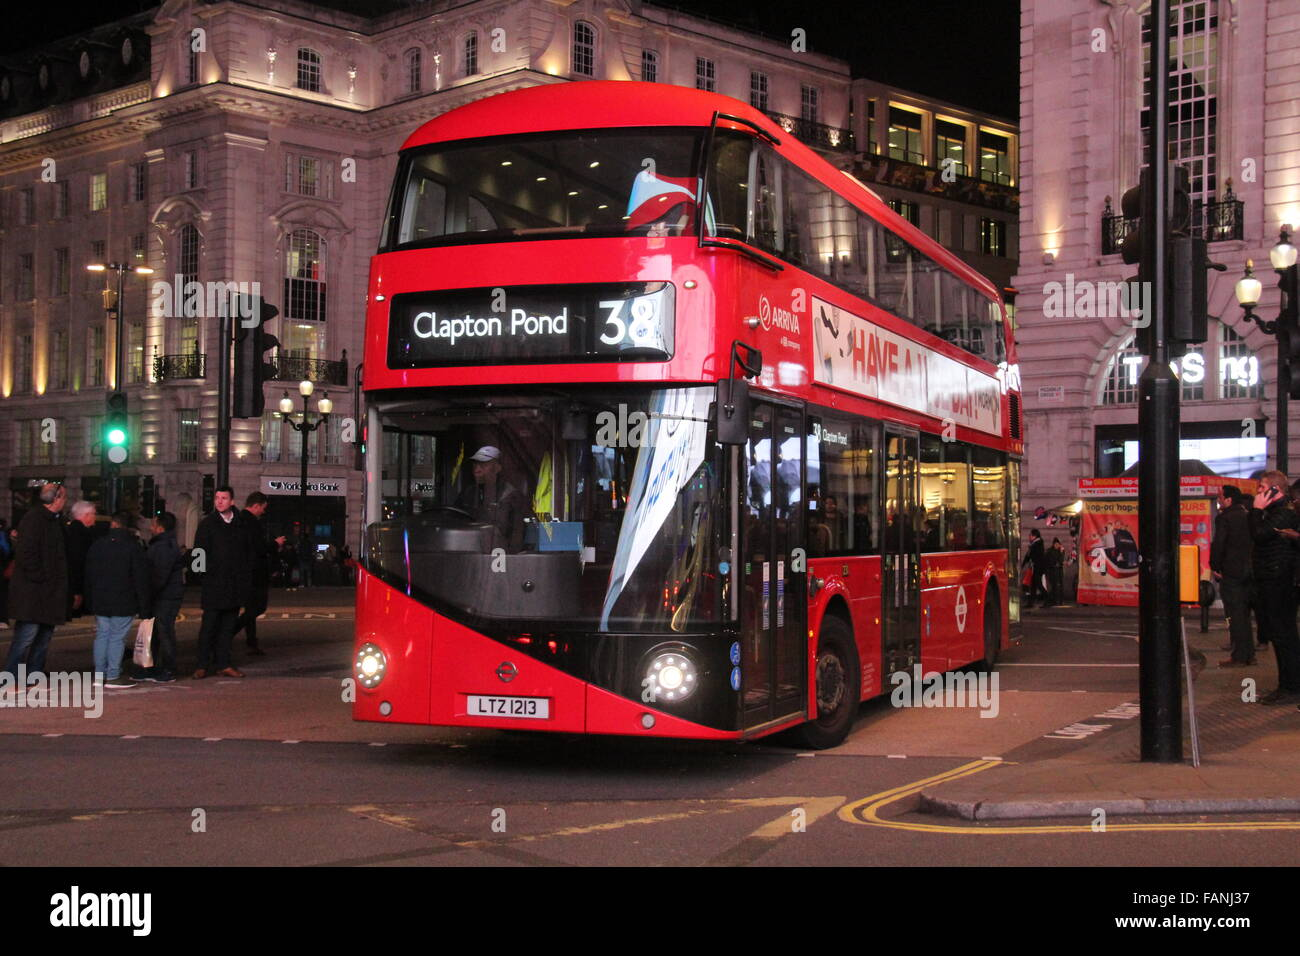 A NIGHT PICTURE OF A TFL ARRIVA NEW ROUTEMASTER BUS AT PICADILLY CIRCUS IN LONDON - Stock Image